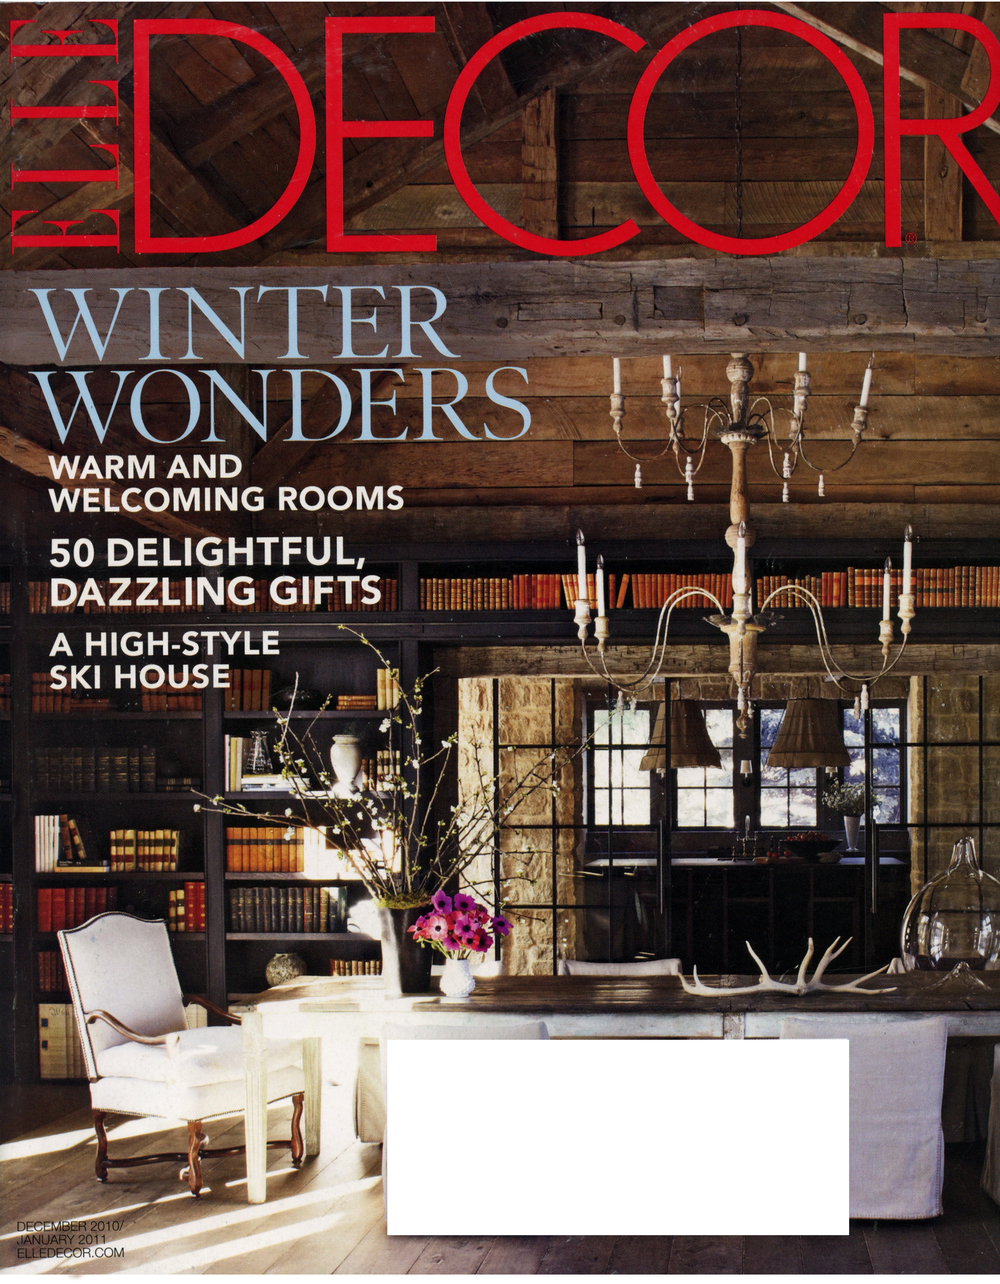 ATI - Elle Decor Wing Chairs Dec. 2010-Jan. 2011 Cover.jpeg